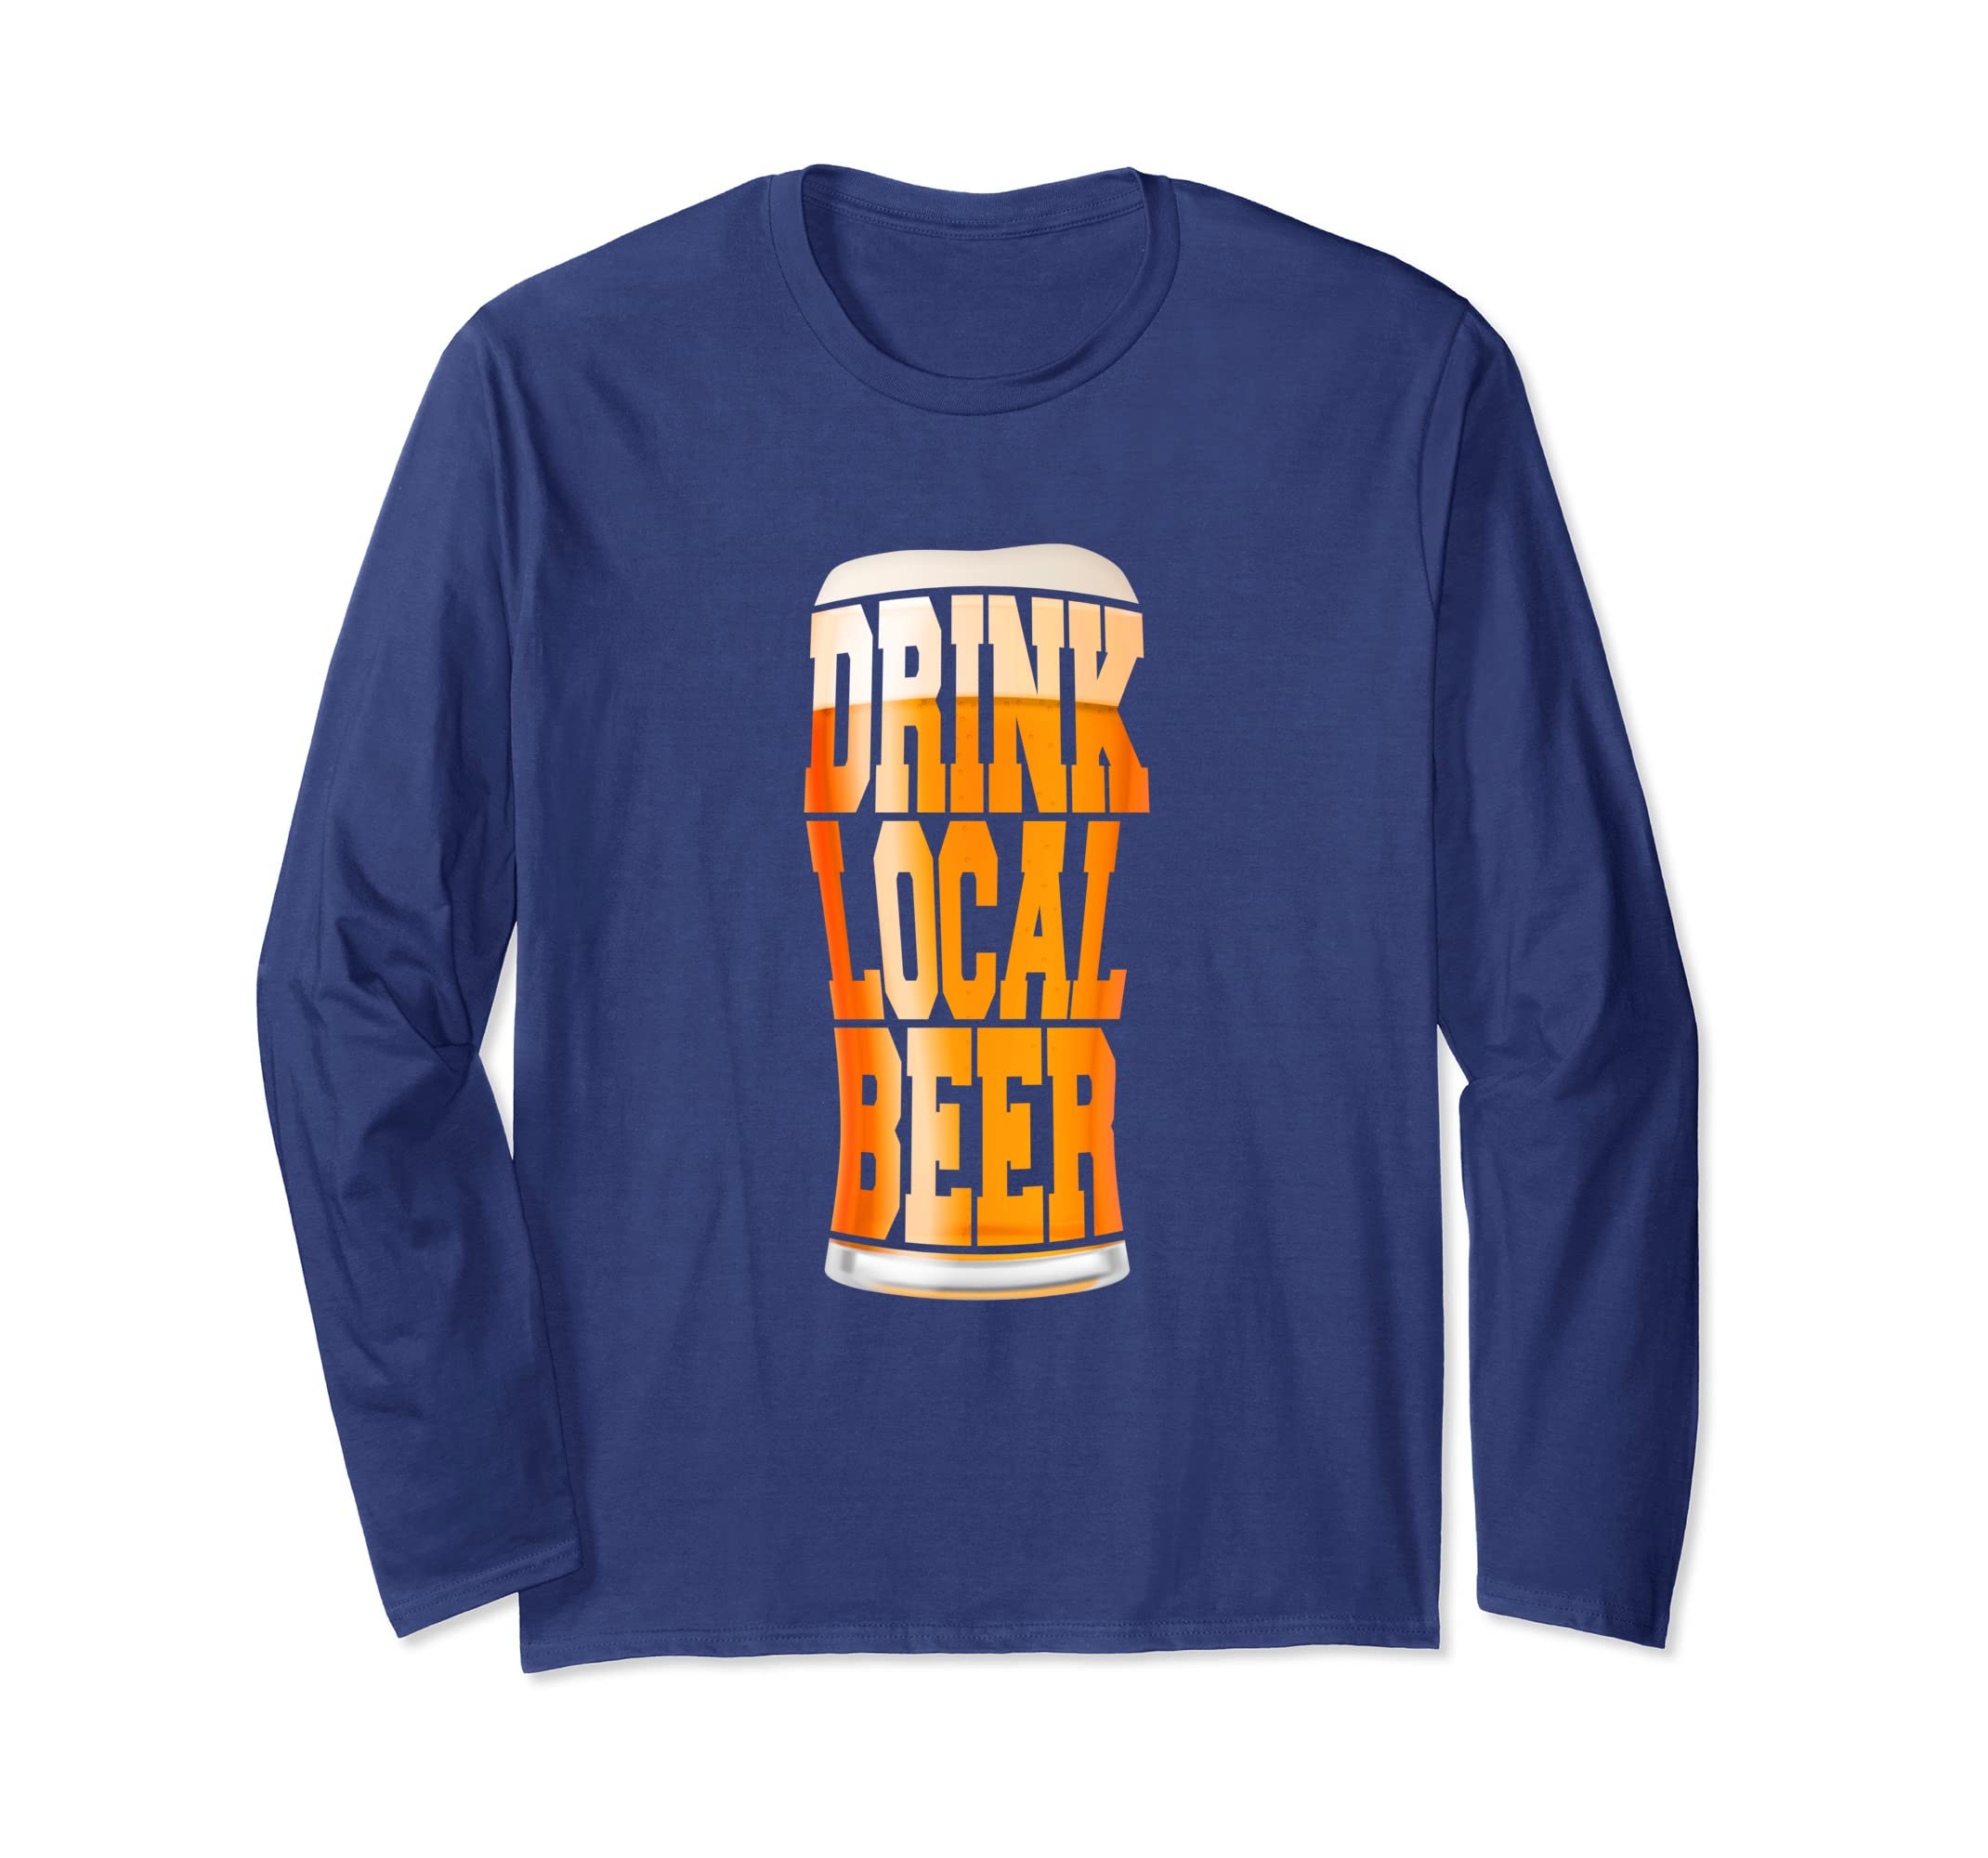 2e7e15f86 Amazon.com: Drink Local Beer Craft Beer Pint T-Shirt: Clothing